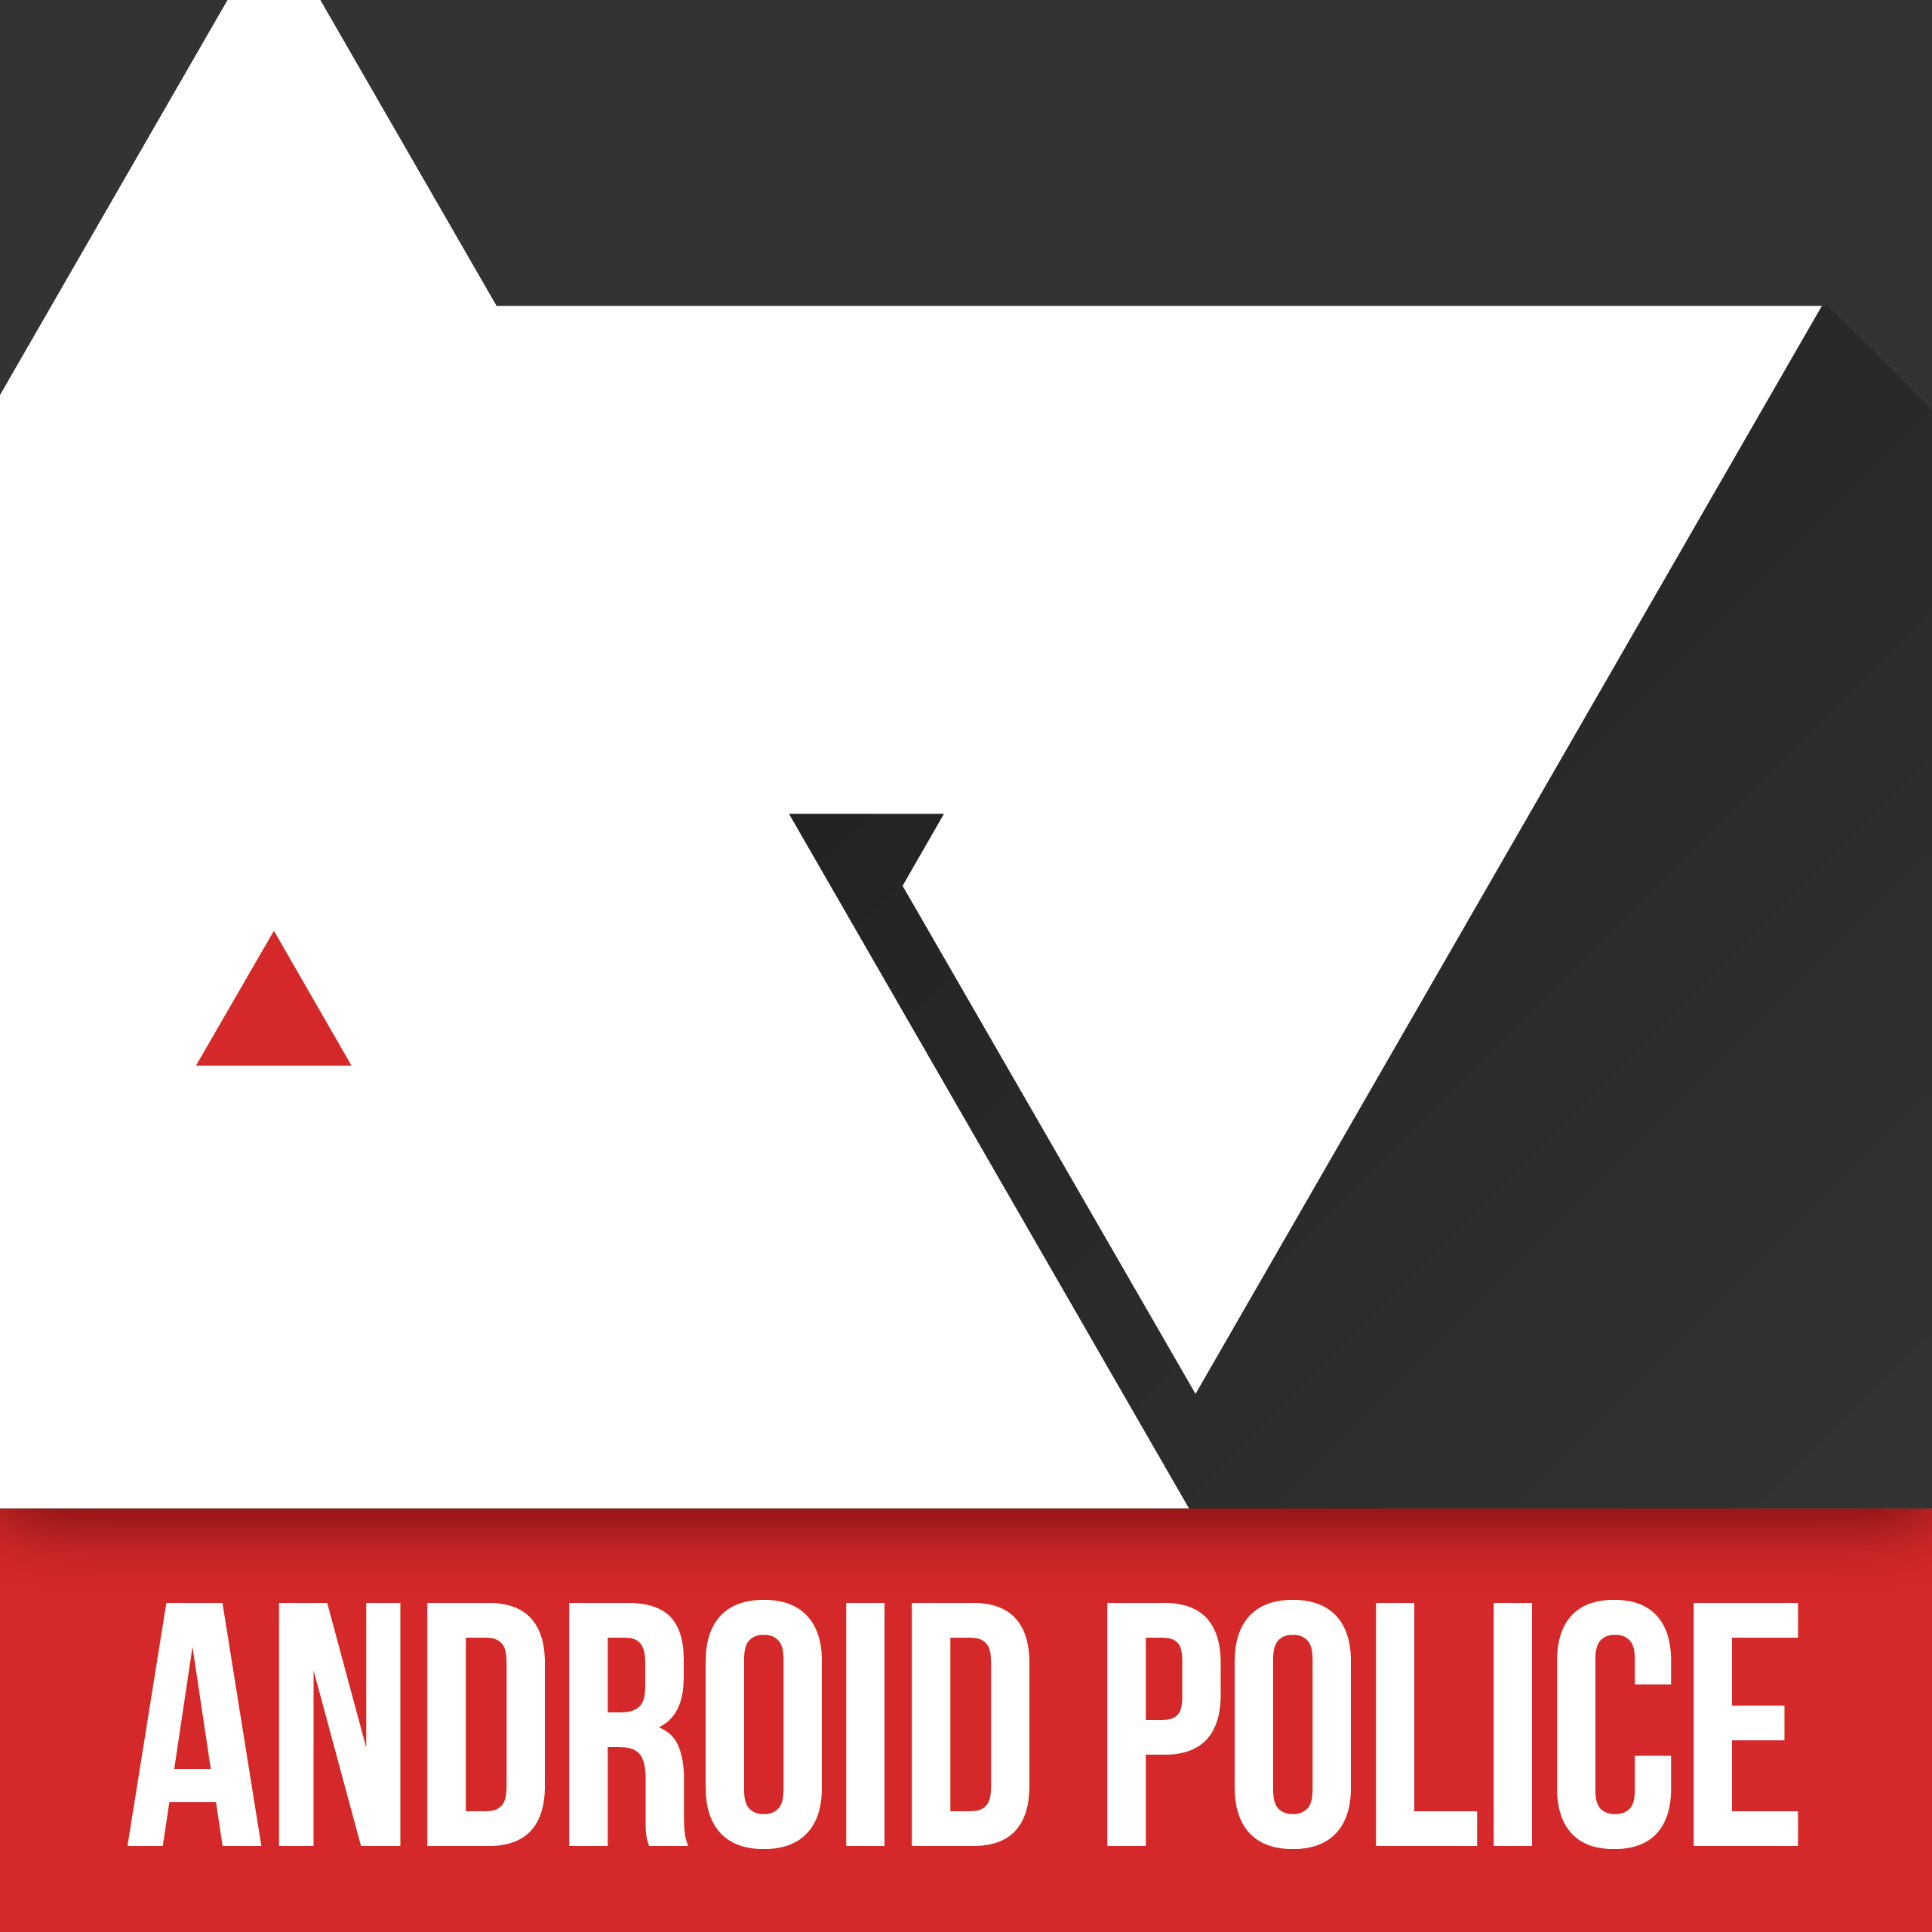 welcome back to another week of the android police podcast to catch us live on hangouts on air every thursday at 530pm pst subject to change as per the